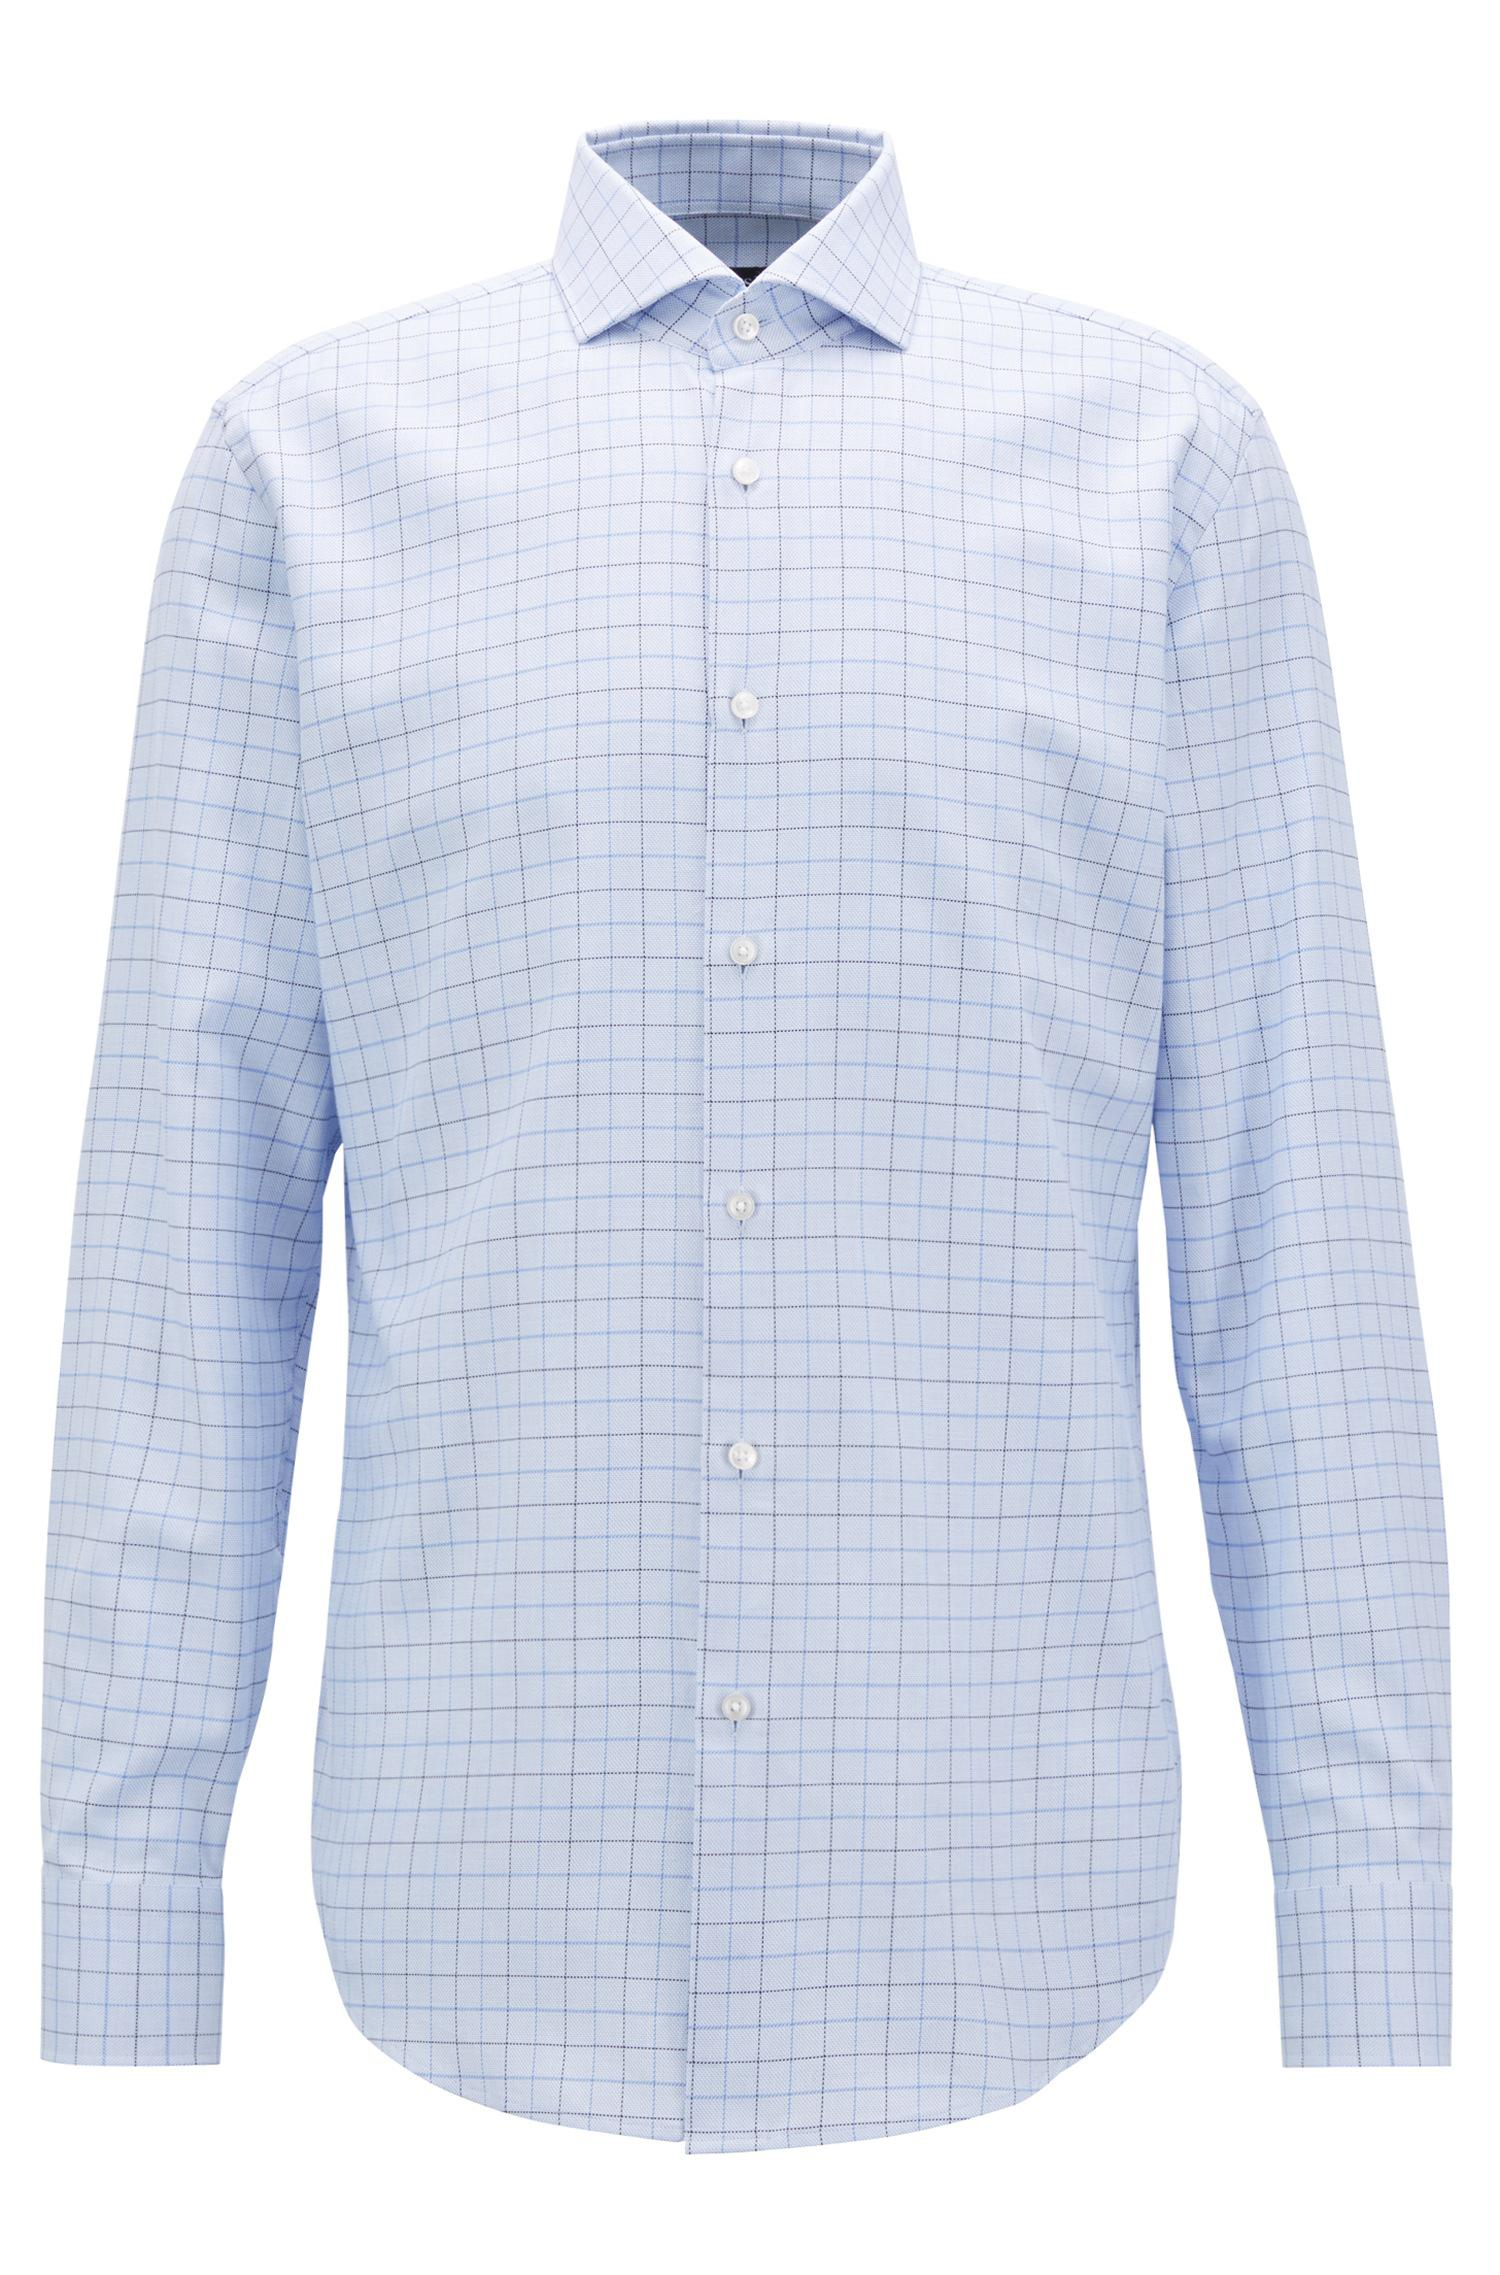 8ebbea10 BOSS Slim-fit Shirt In Plain-check Cotton Twill in Blue for Men - Lyst